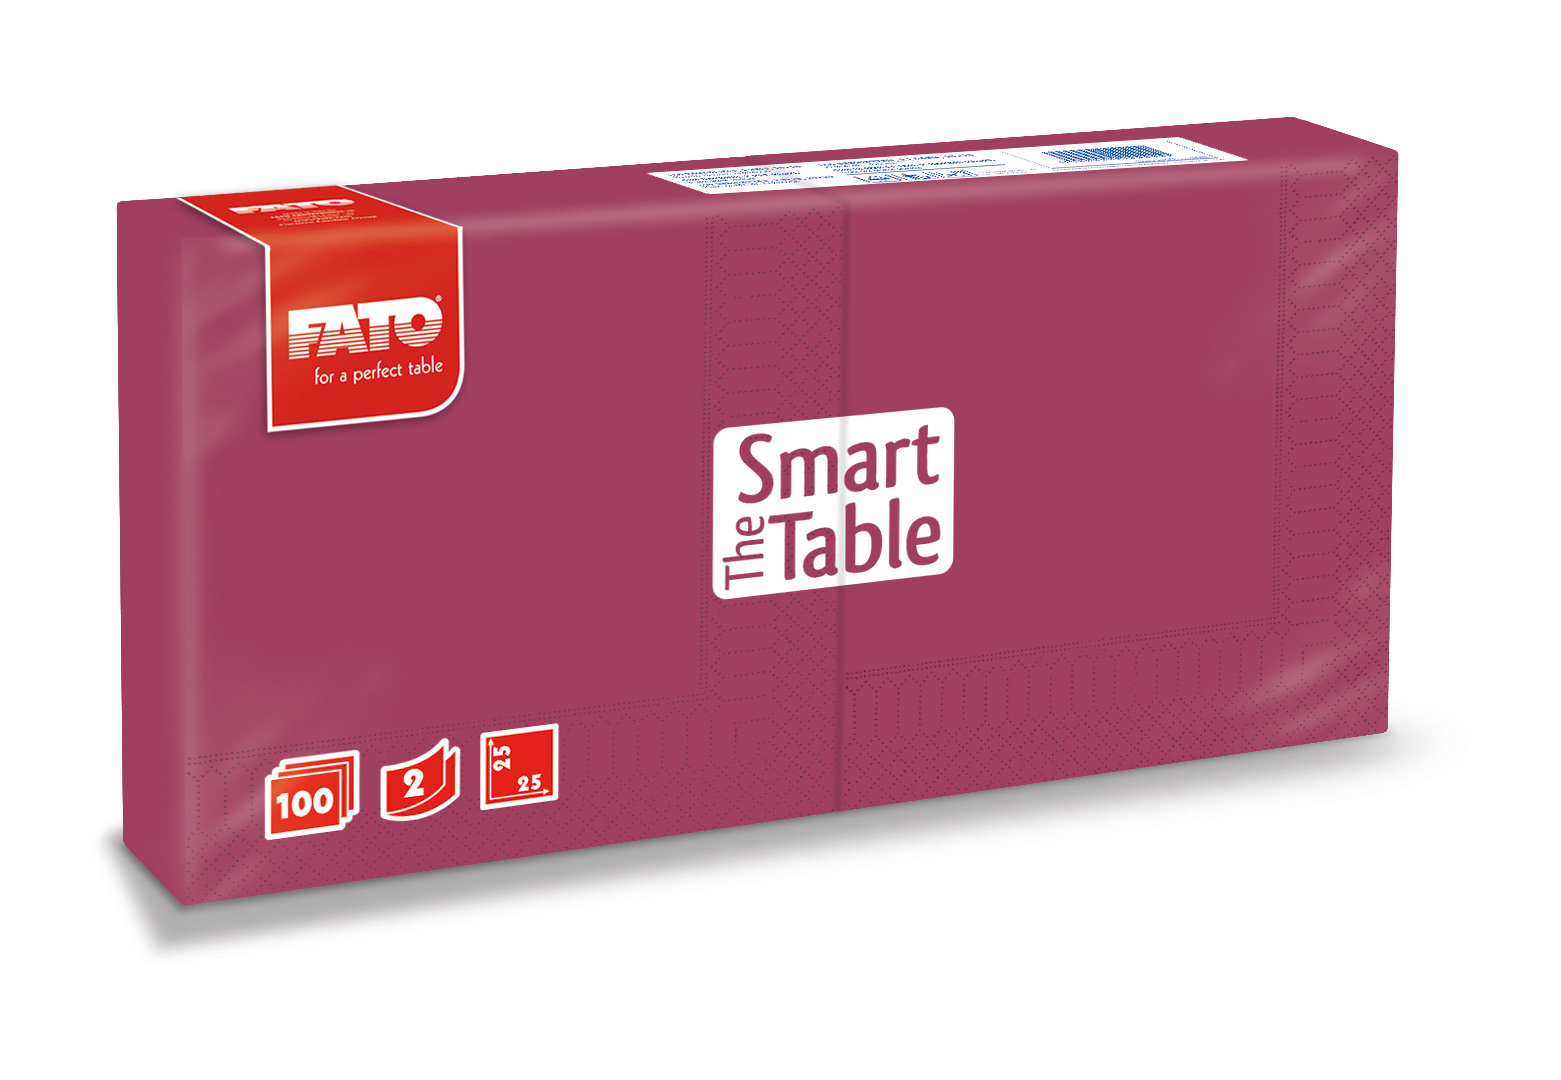 Ubrousky The Smart Table, 25x25cm, 2vr., Bordó - 3800 ks